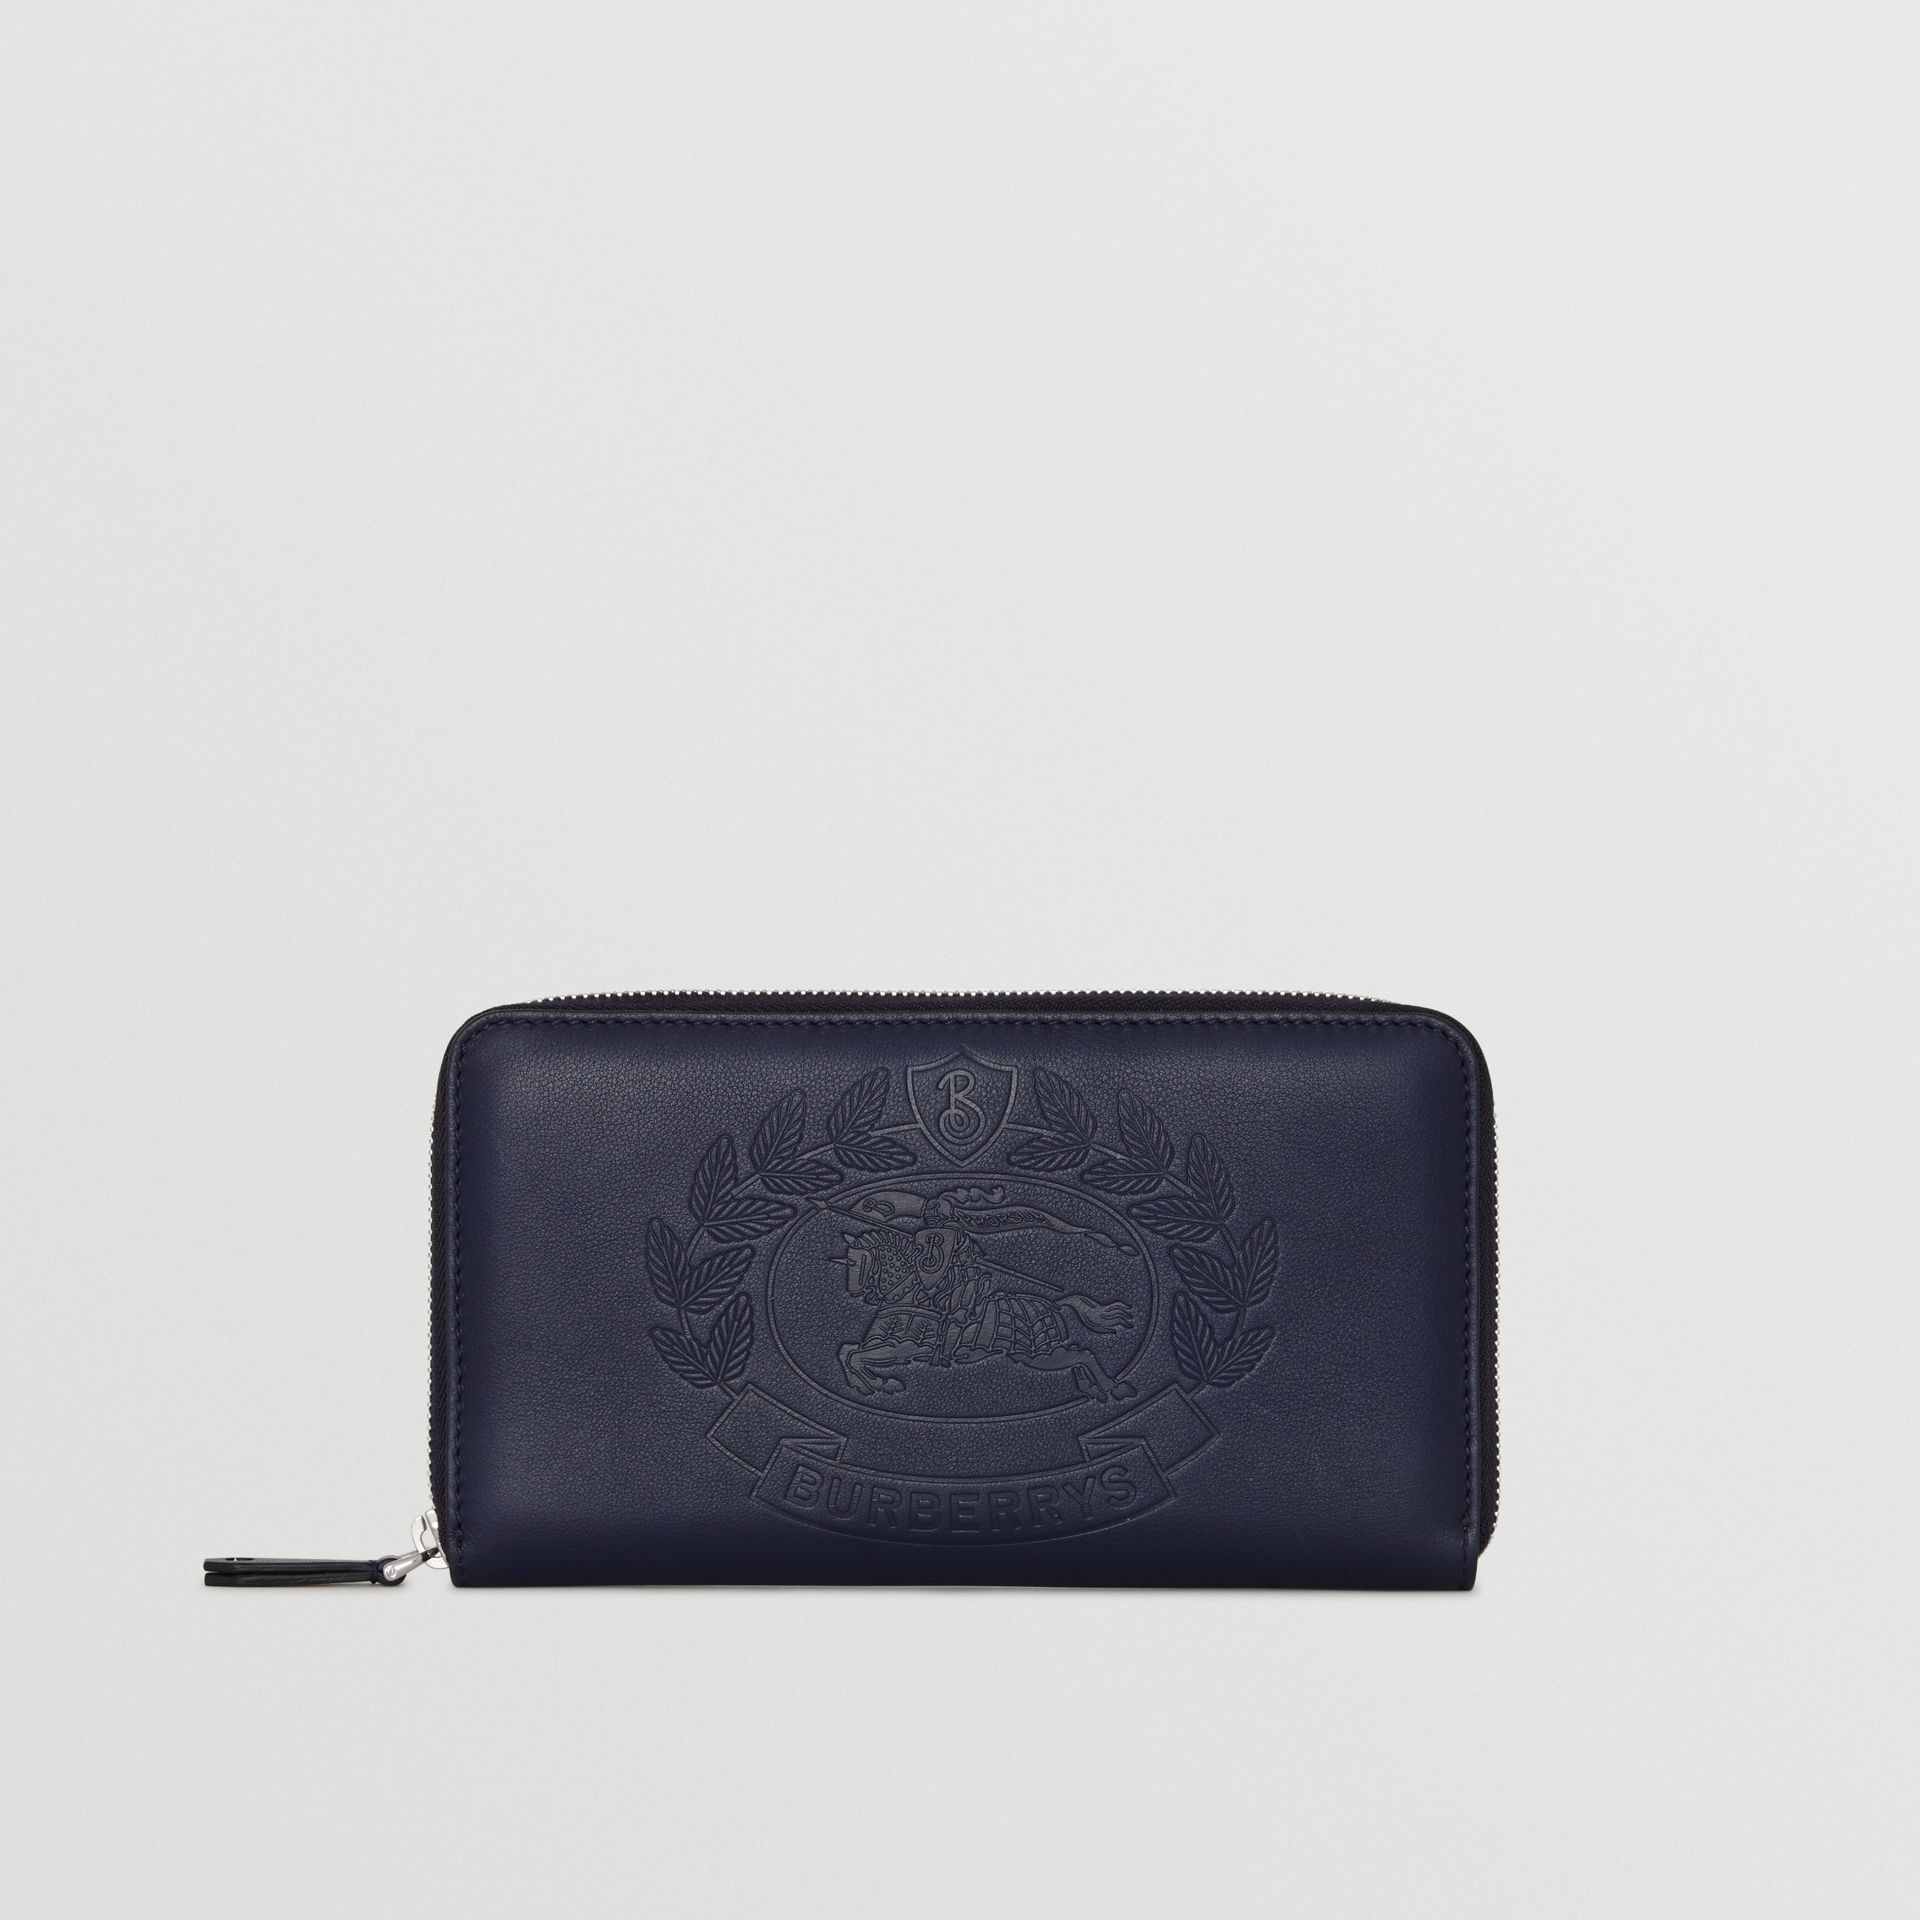 Embossed Crest Leather Ziparound Wallet in Regency Blue - Men | Burberry - gallery image 2